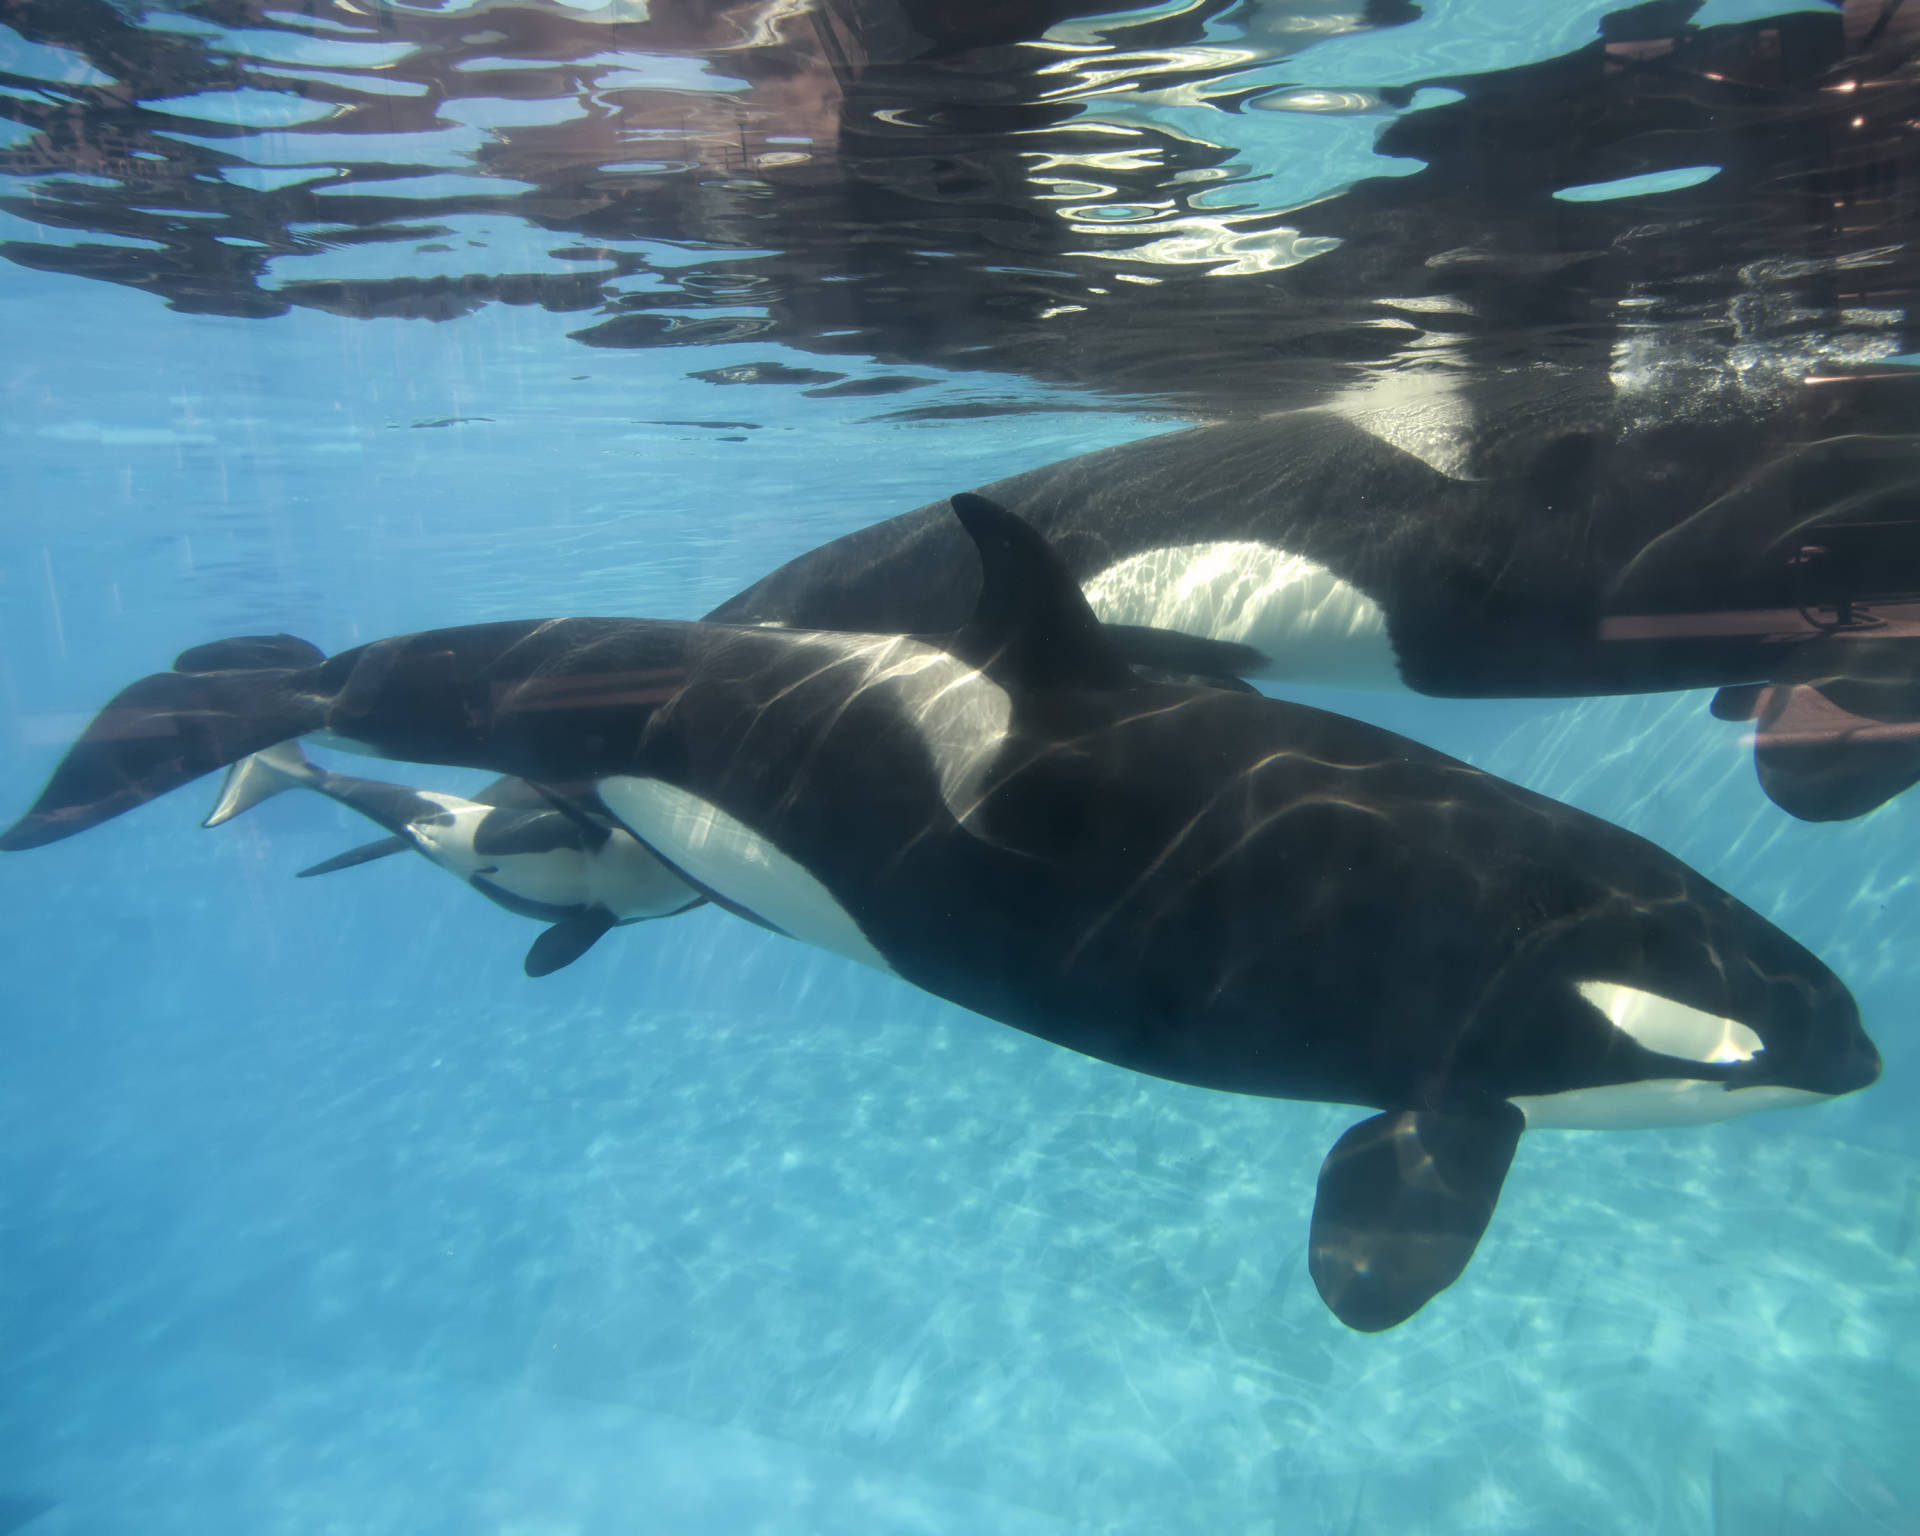 SeaWorld to Stop Breeding Orcas, End Whale Shows